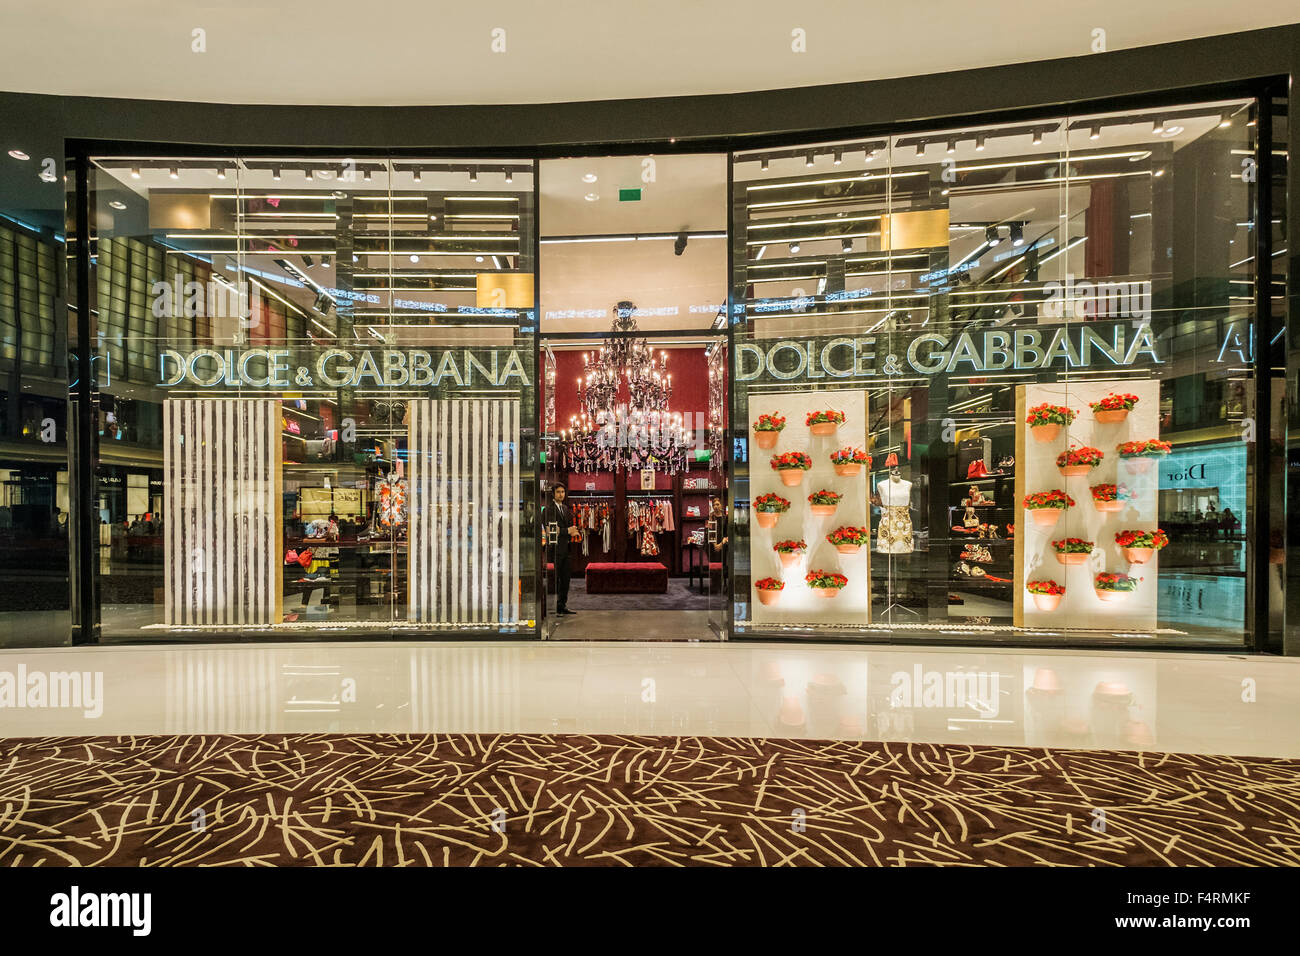 bde226e531ad view of Dolce and Gabbana fashion boutique inside Dubai Mall in United Arab  Emirates